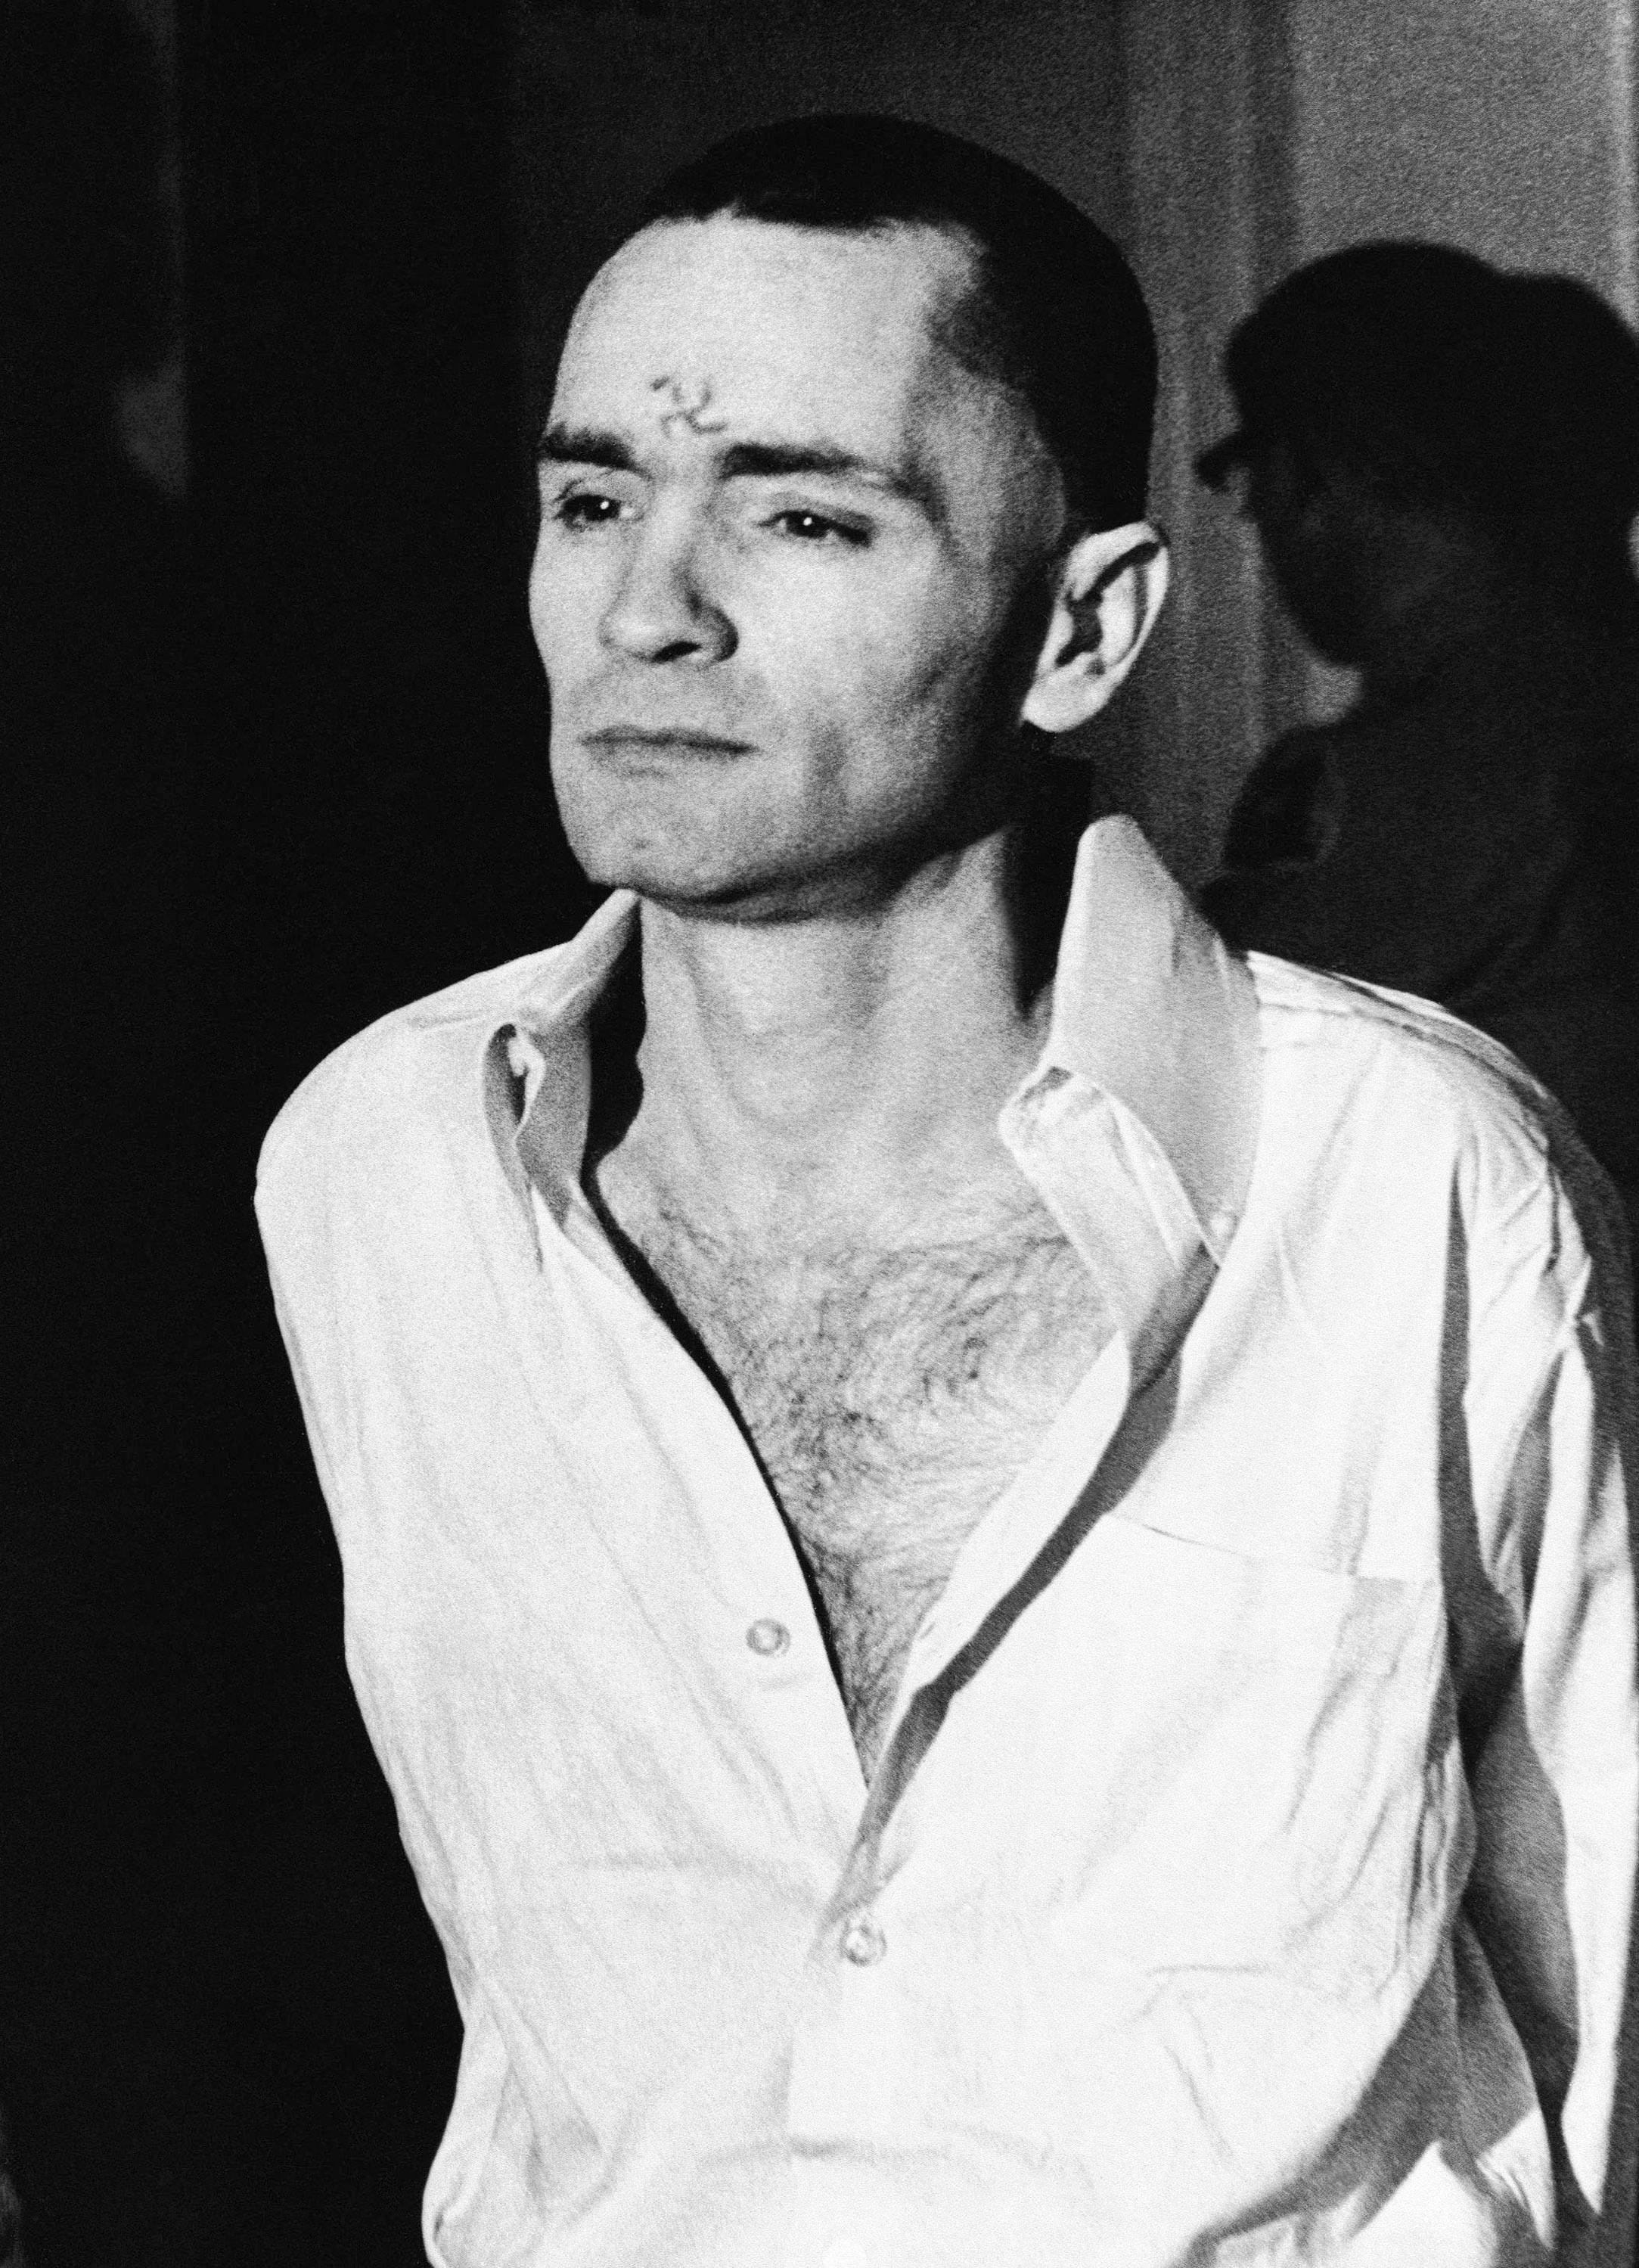 FILE - In this March 12, 1971 file photo, Charles Manson, with a swastika on his forehead, walks to court in Los Angeles, during the the penalty phase of the Sharon Tate trial after being convicted of murder in the deaths of Tate and six others. Authorities say Manson, cult leader and mastermind behind 1969 deaths of actress Sharon Tate and six others, died on Sunday, Nov. 19, 2017. He was 83.